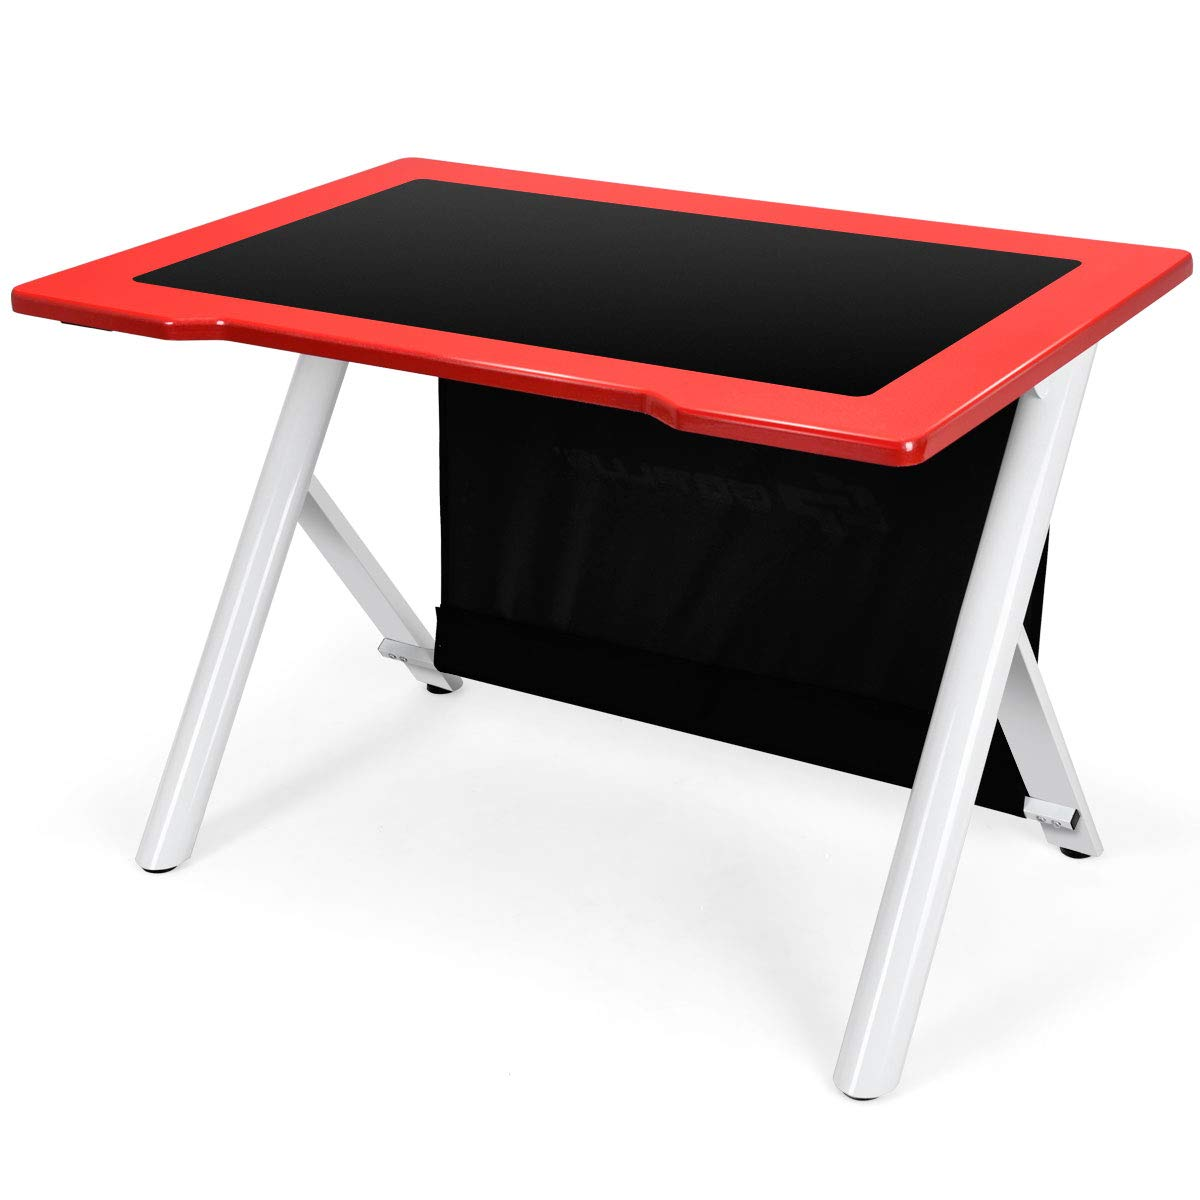 Giantex Gaming Desk, E-Sports Computer Desk Table with Large Ergonomic Surface and Heavy Duty Construction for Home or Office, Gaming PC Desk Table Red Black